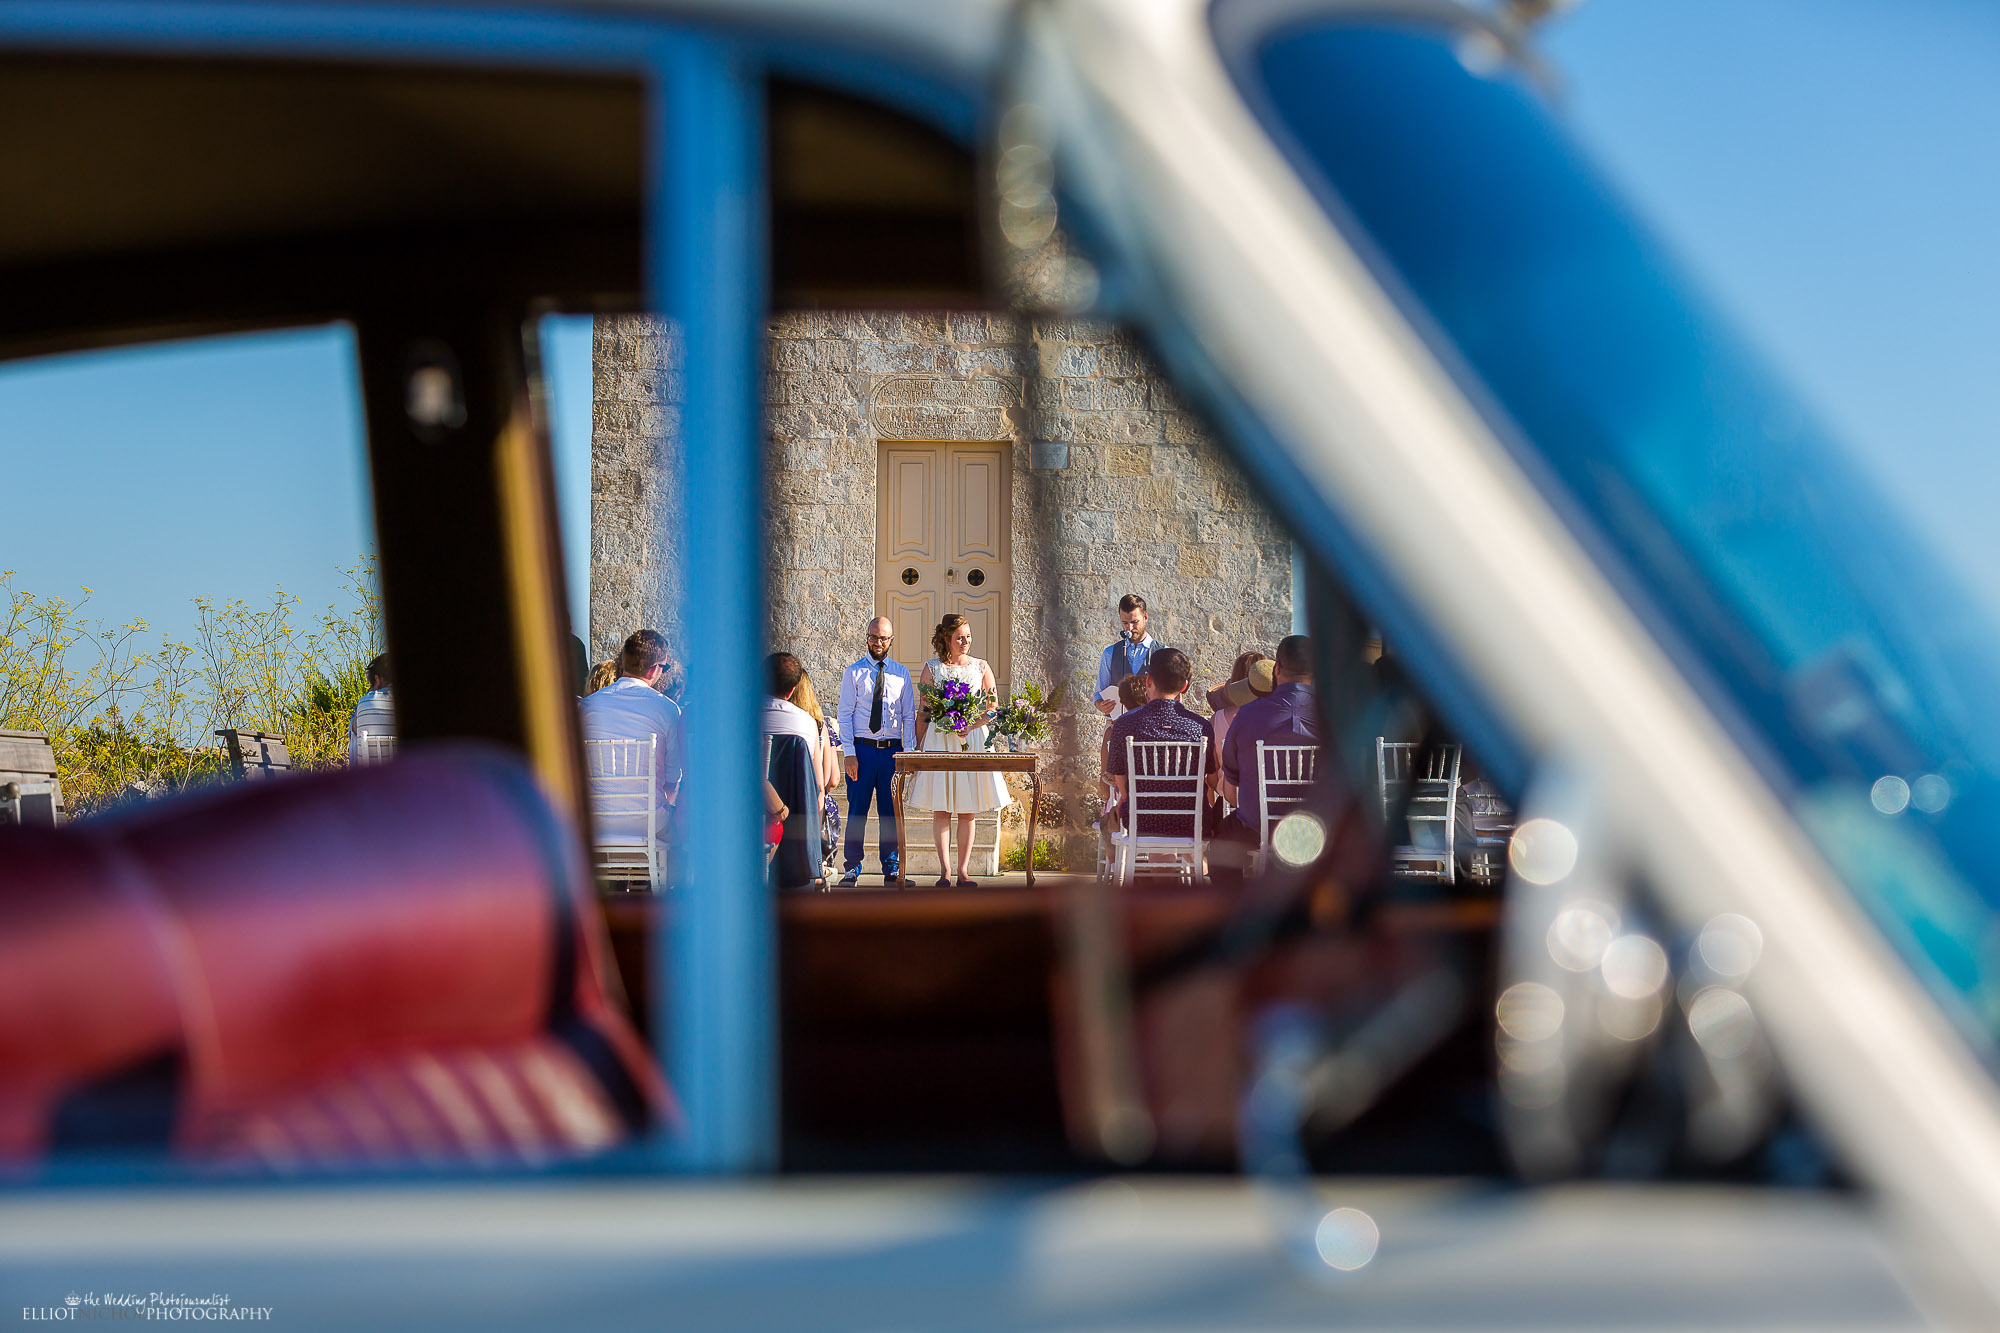 View through the vintage wedding car's window of the wedding blessing ceremony. Newcastle Upon Tyne based wedding photographer Elliot Nichol photographing destination weddings.